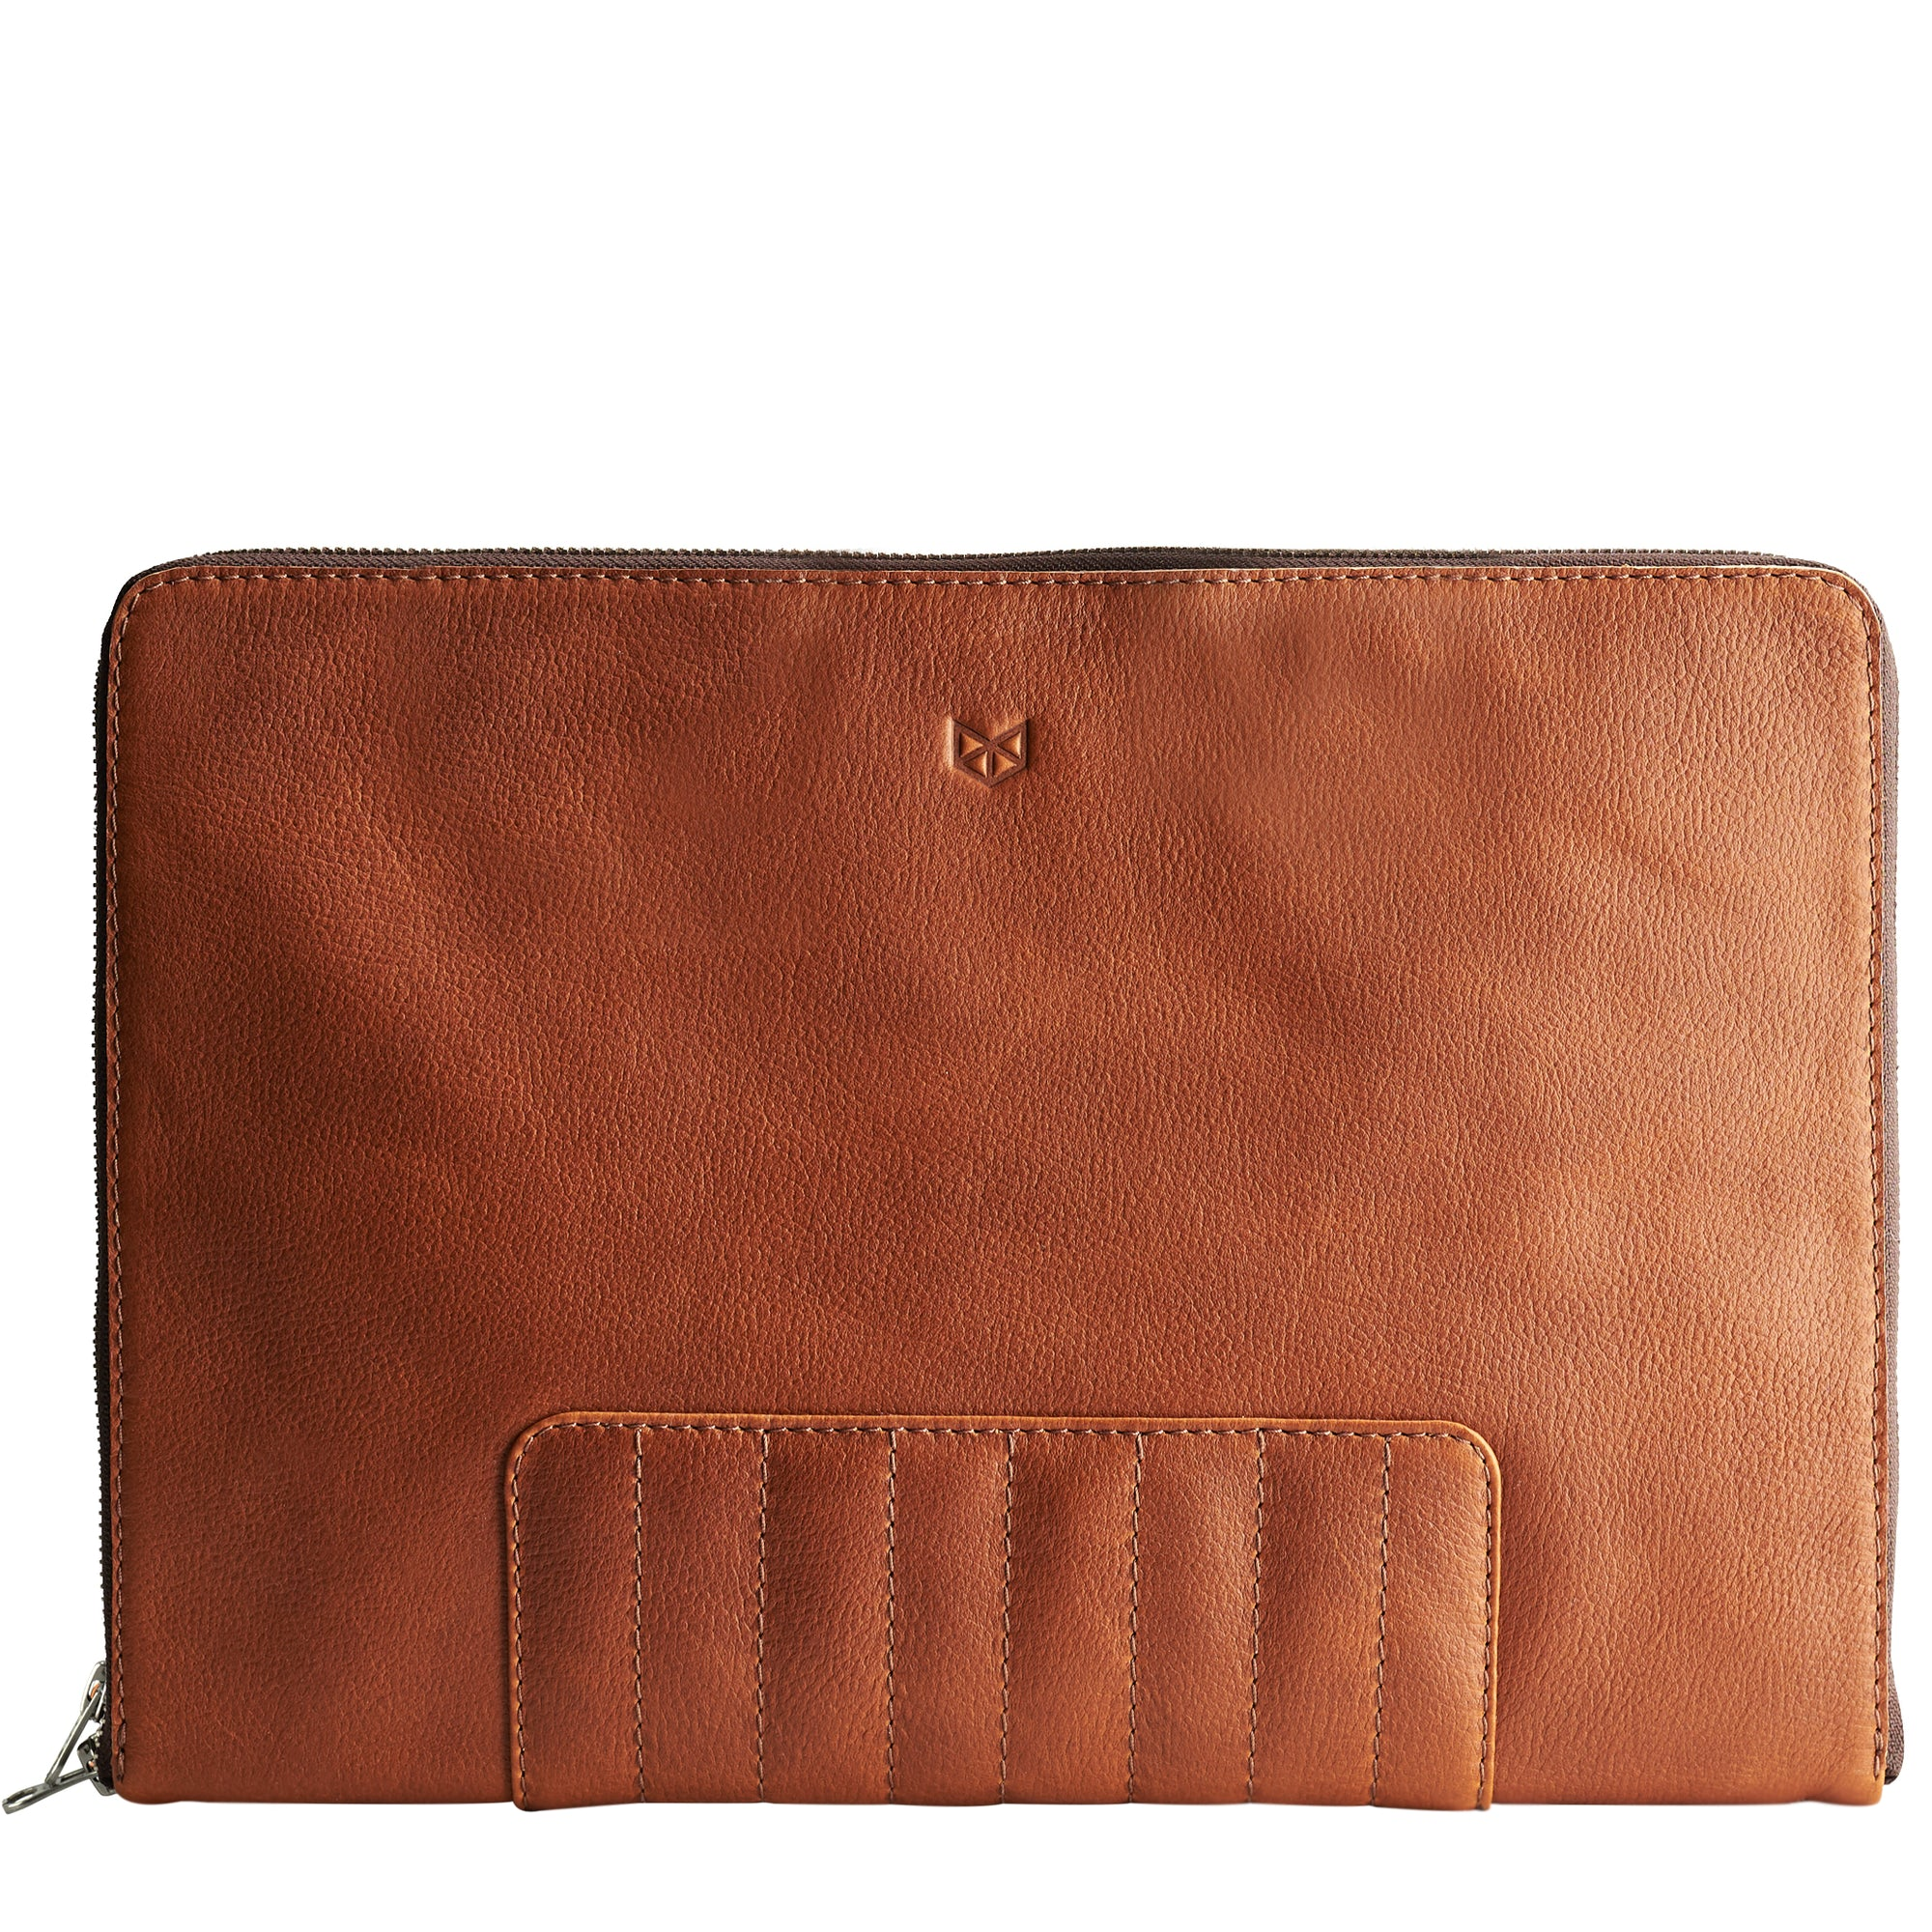 Cover. Tan laptop portfolio. Business document organizer for men.